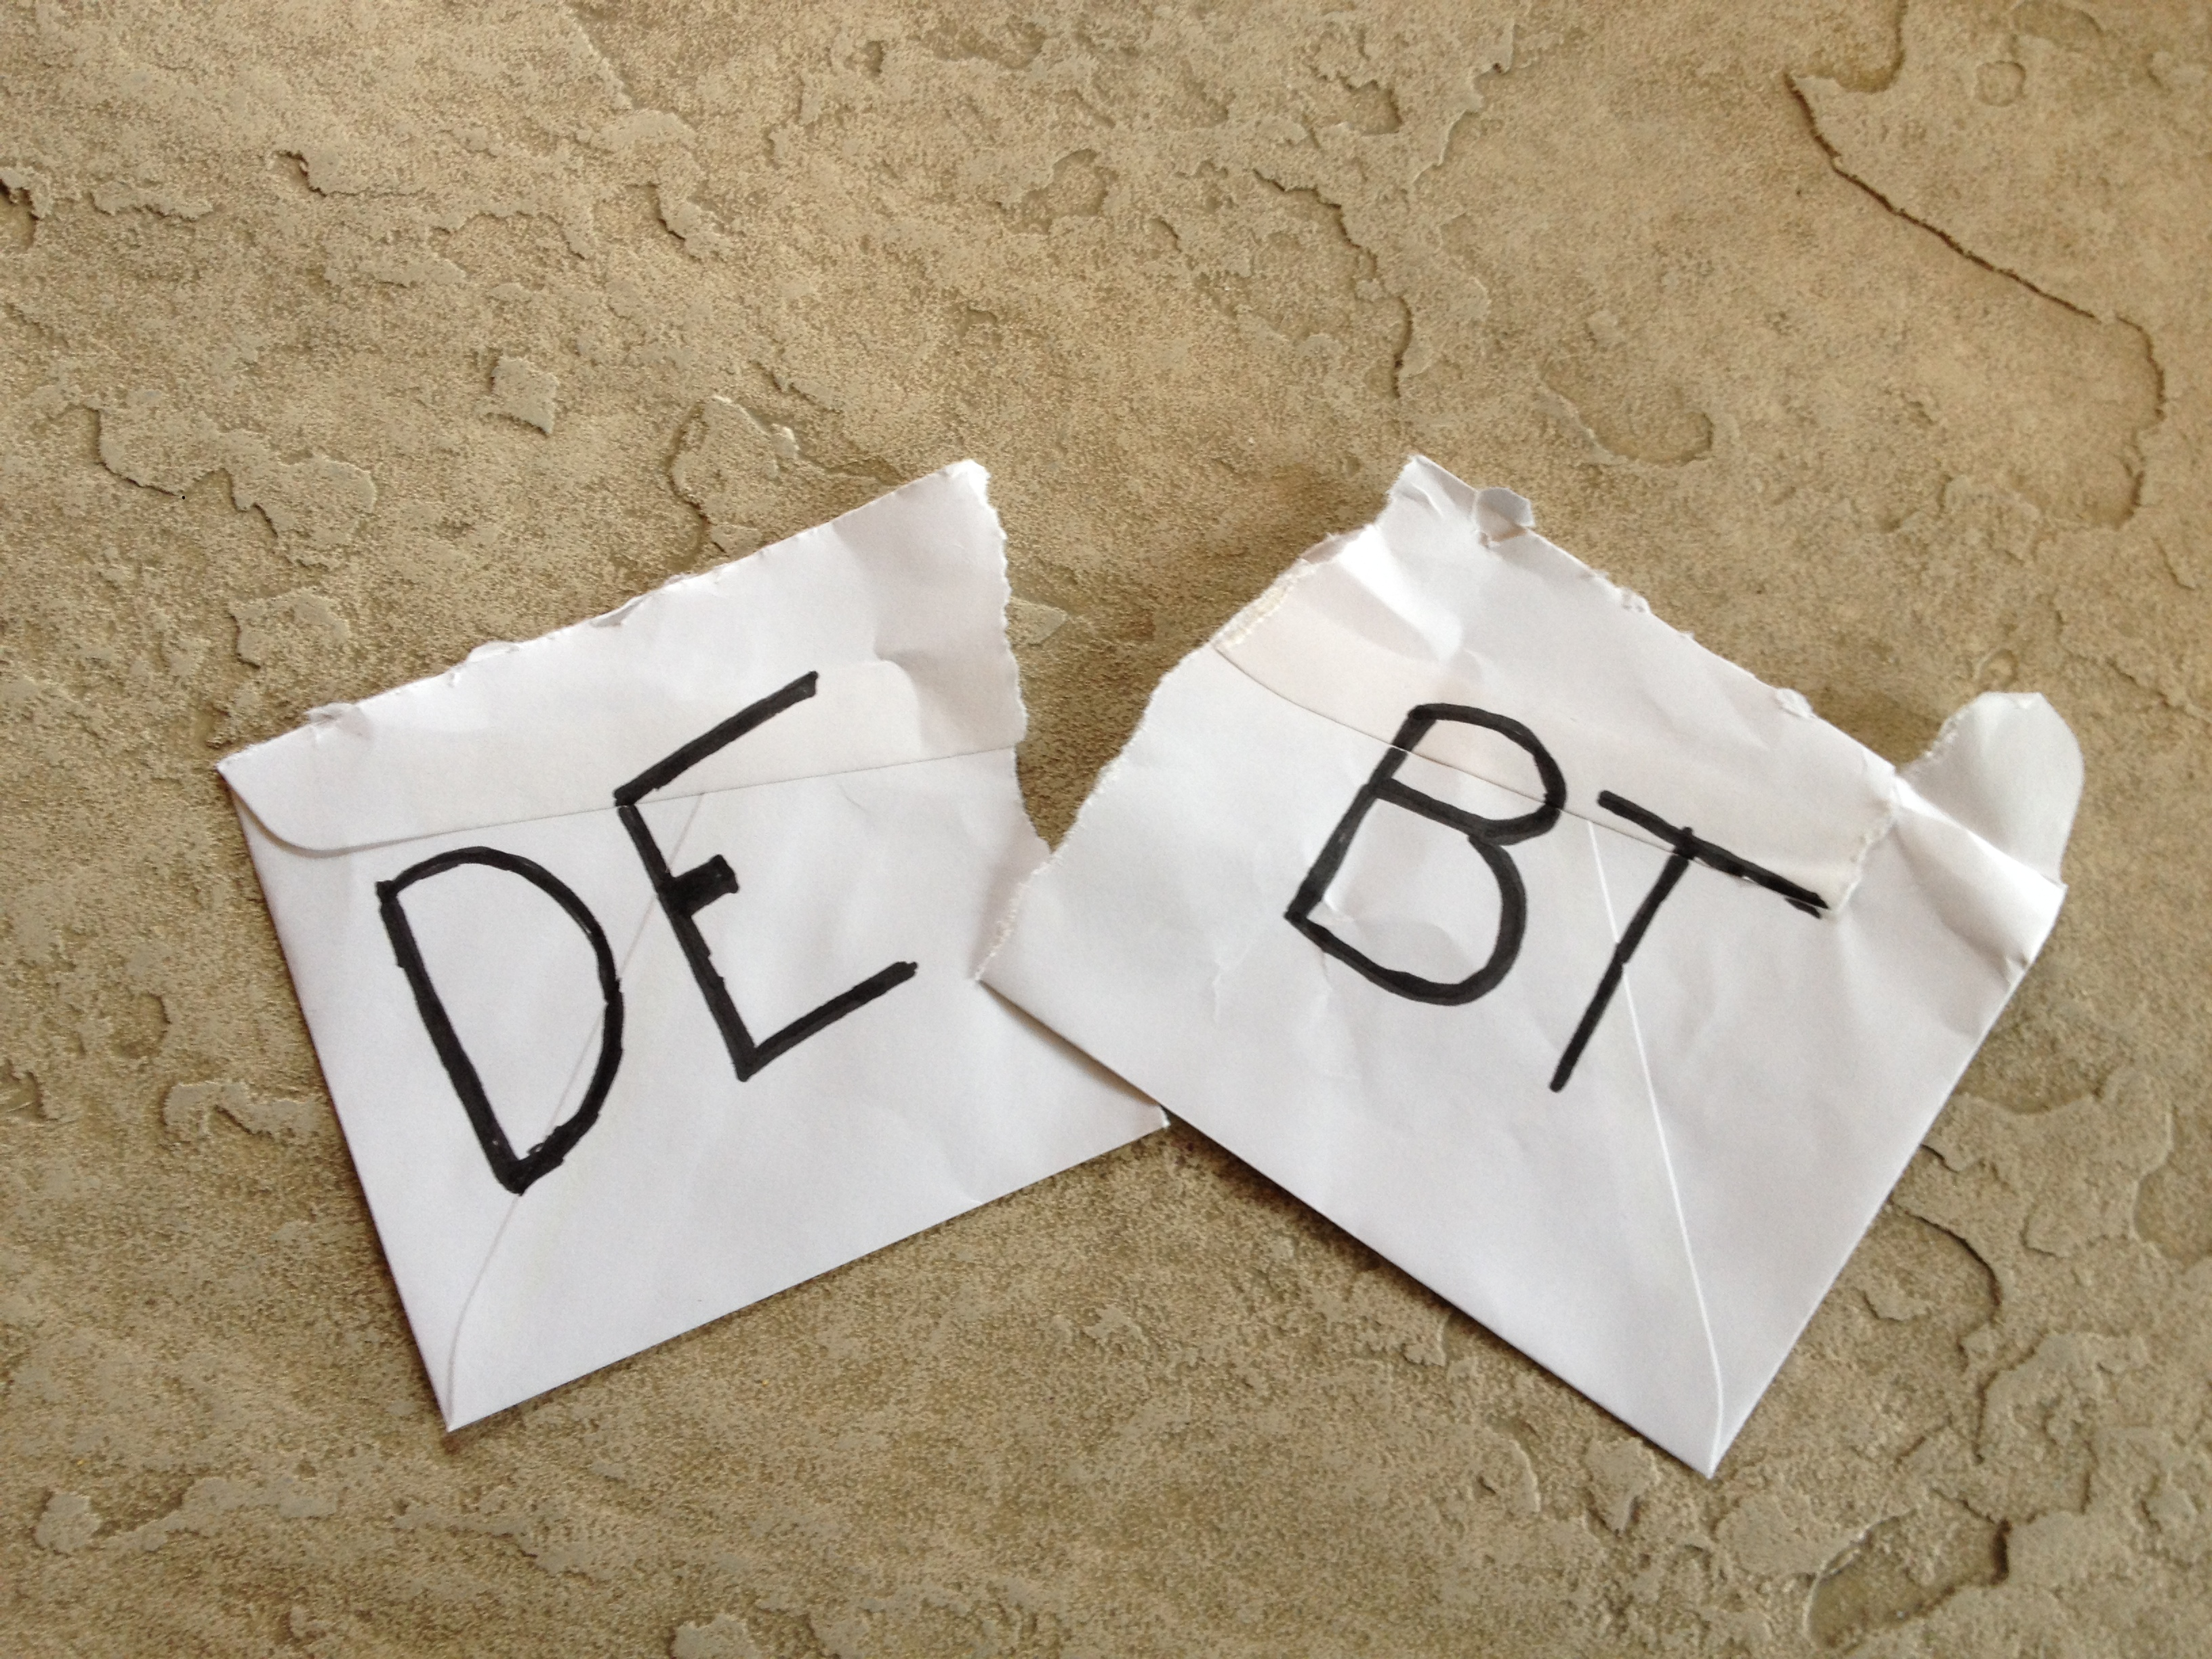 debt-envelope1